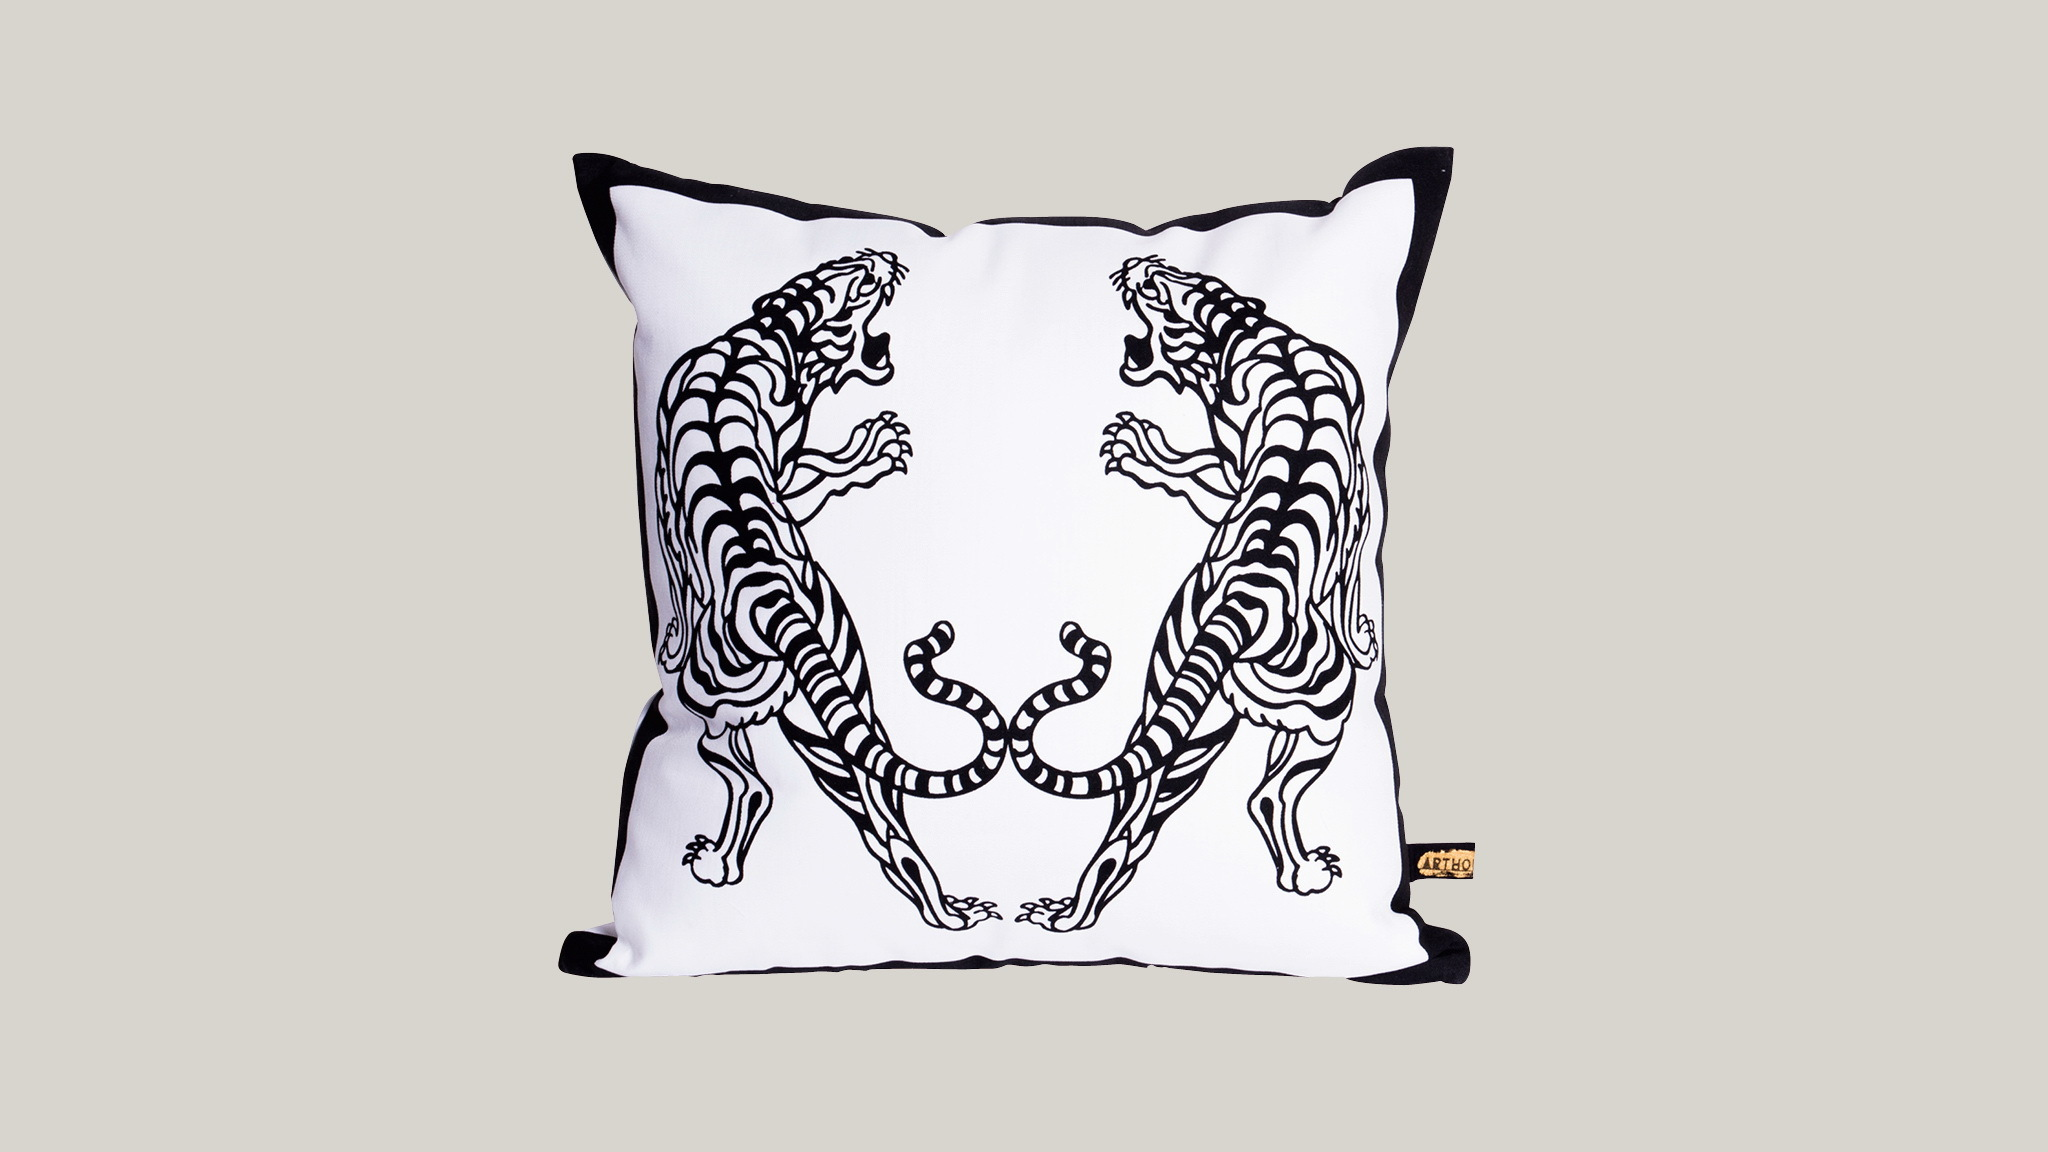 Cushion, Objects of Design Store, Gift Guide